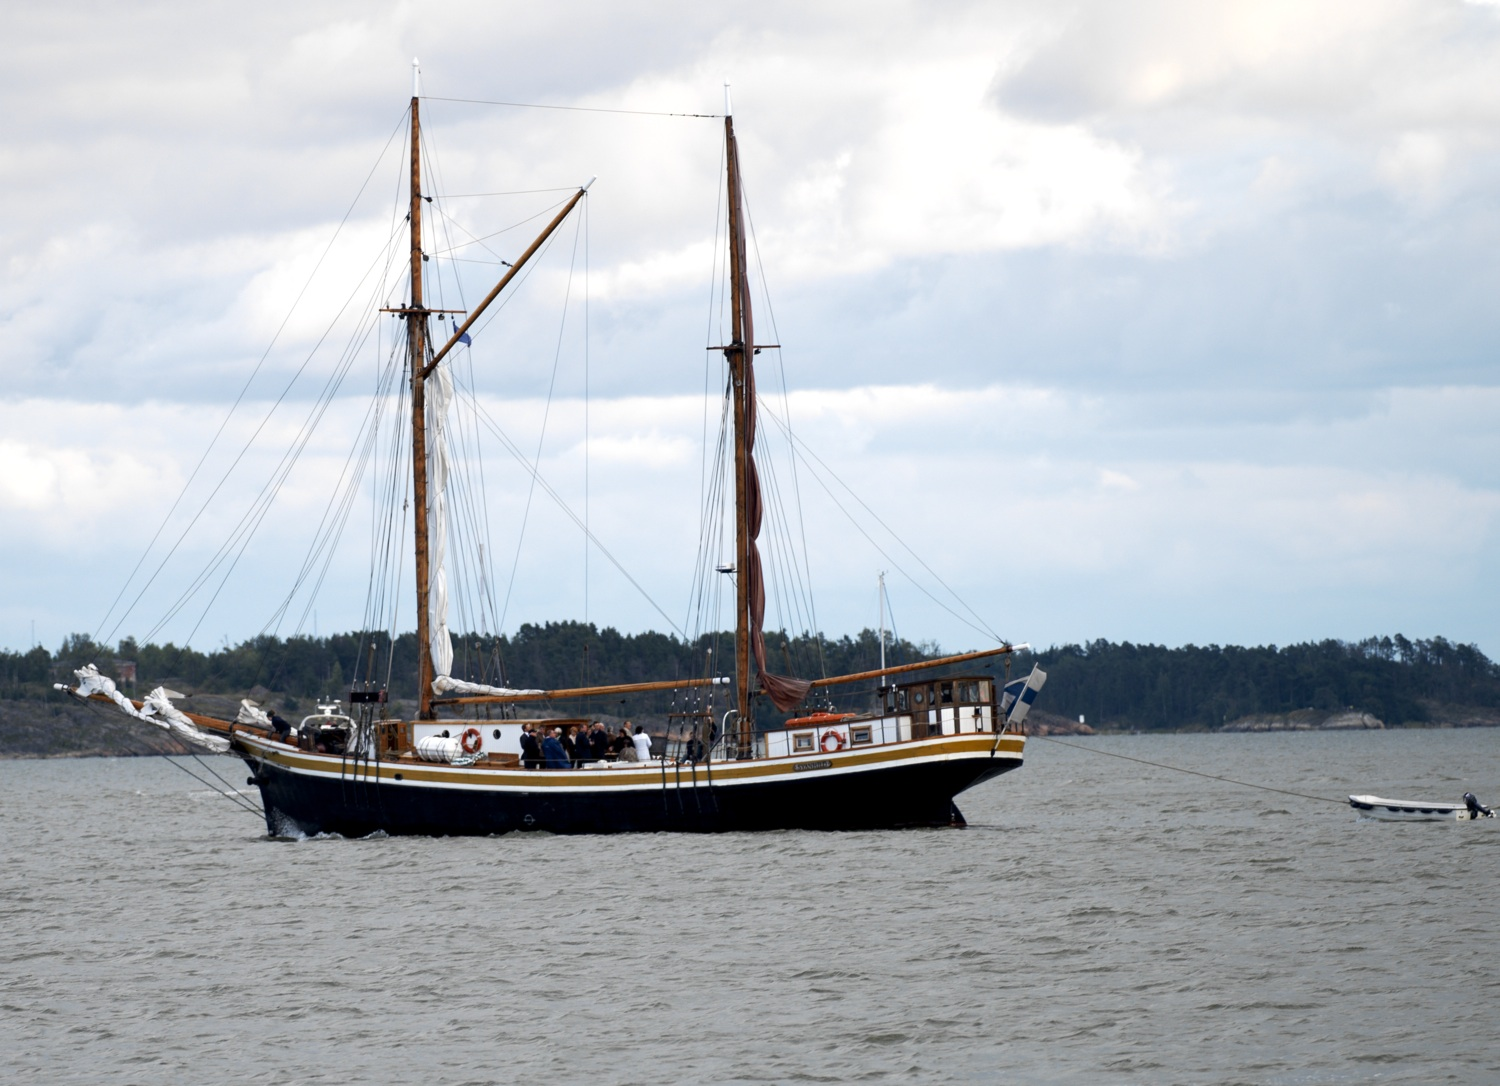 swanhild about to sail author soini hannu